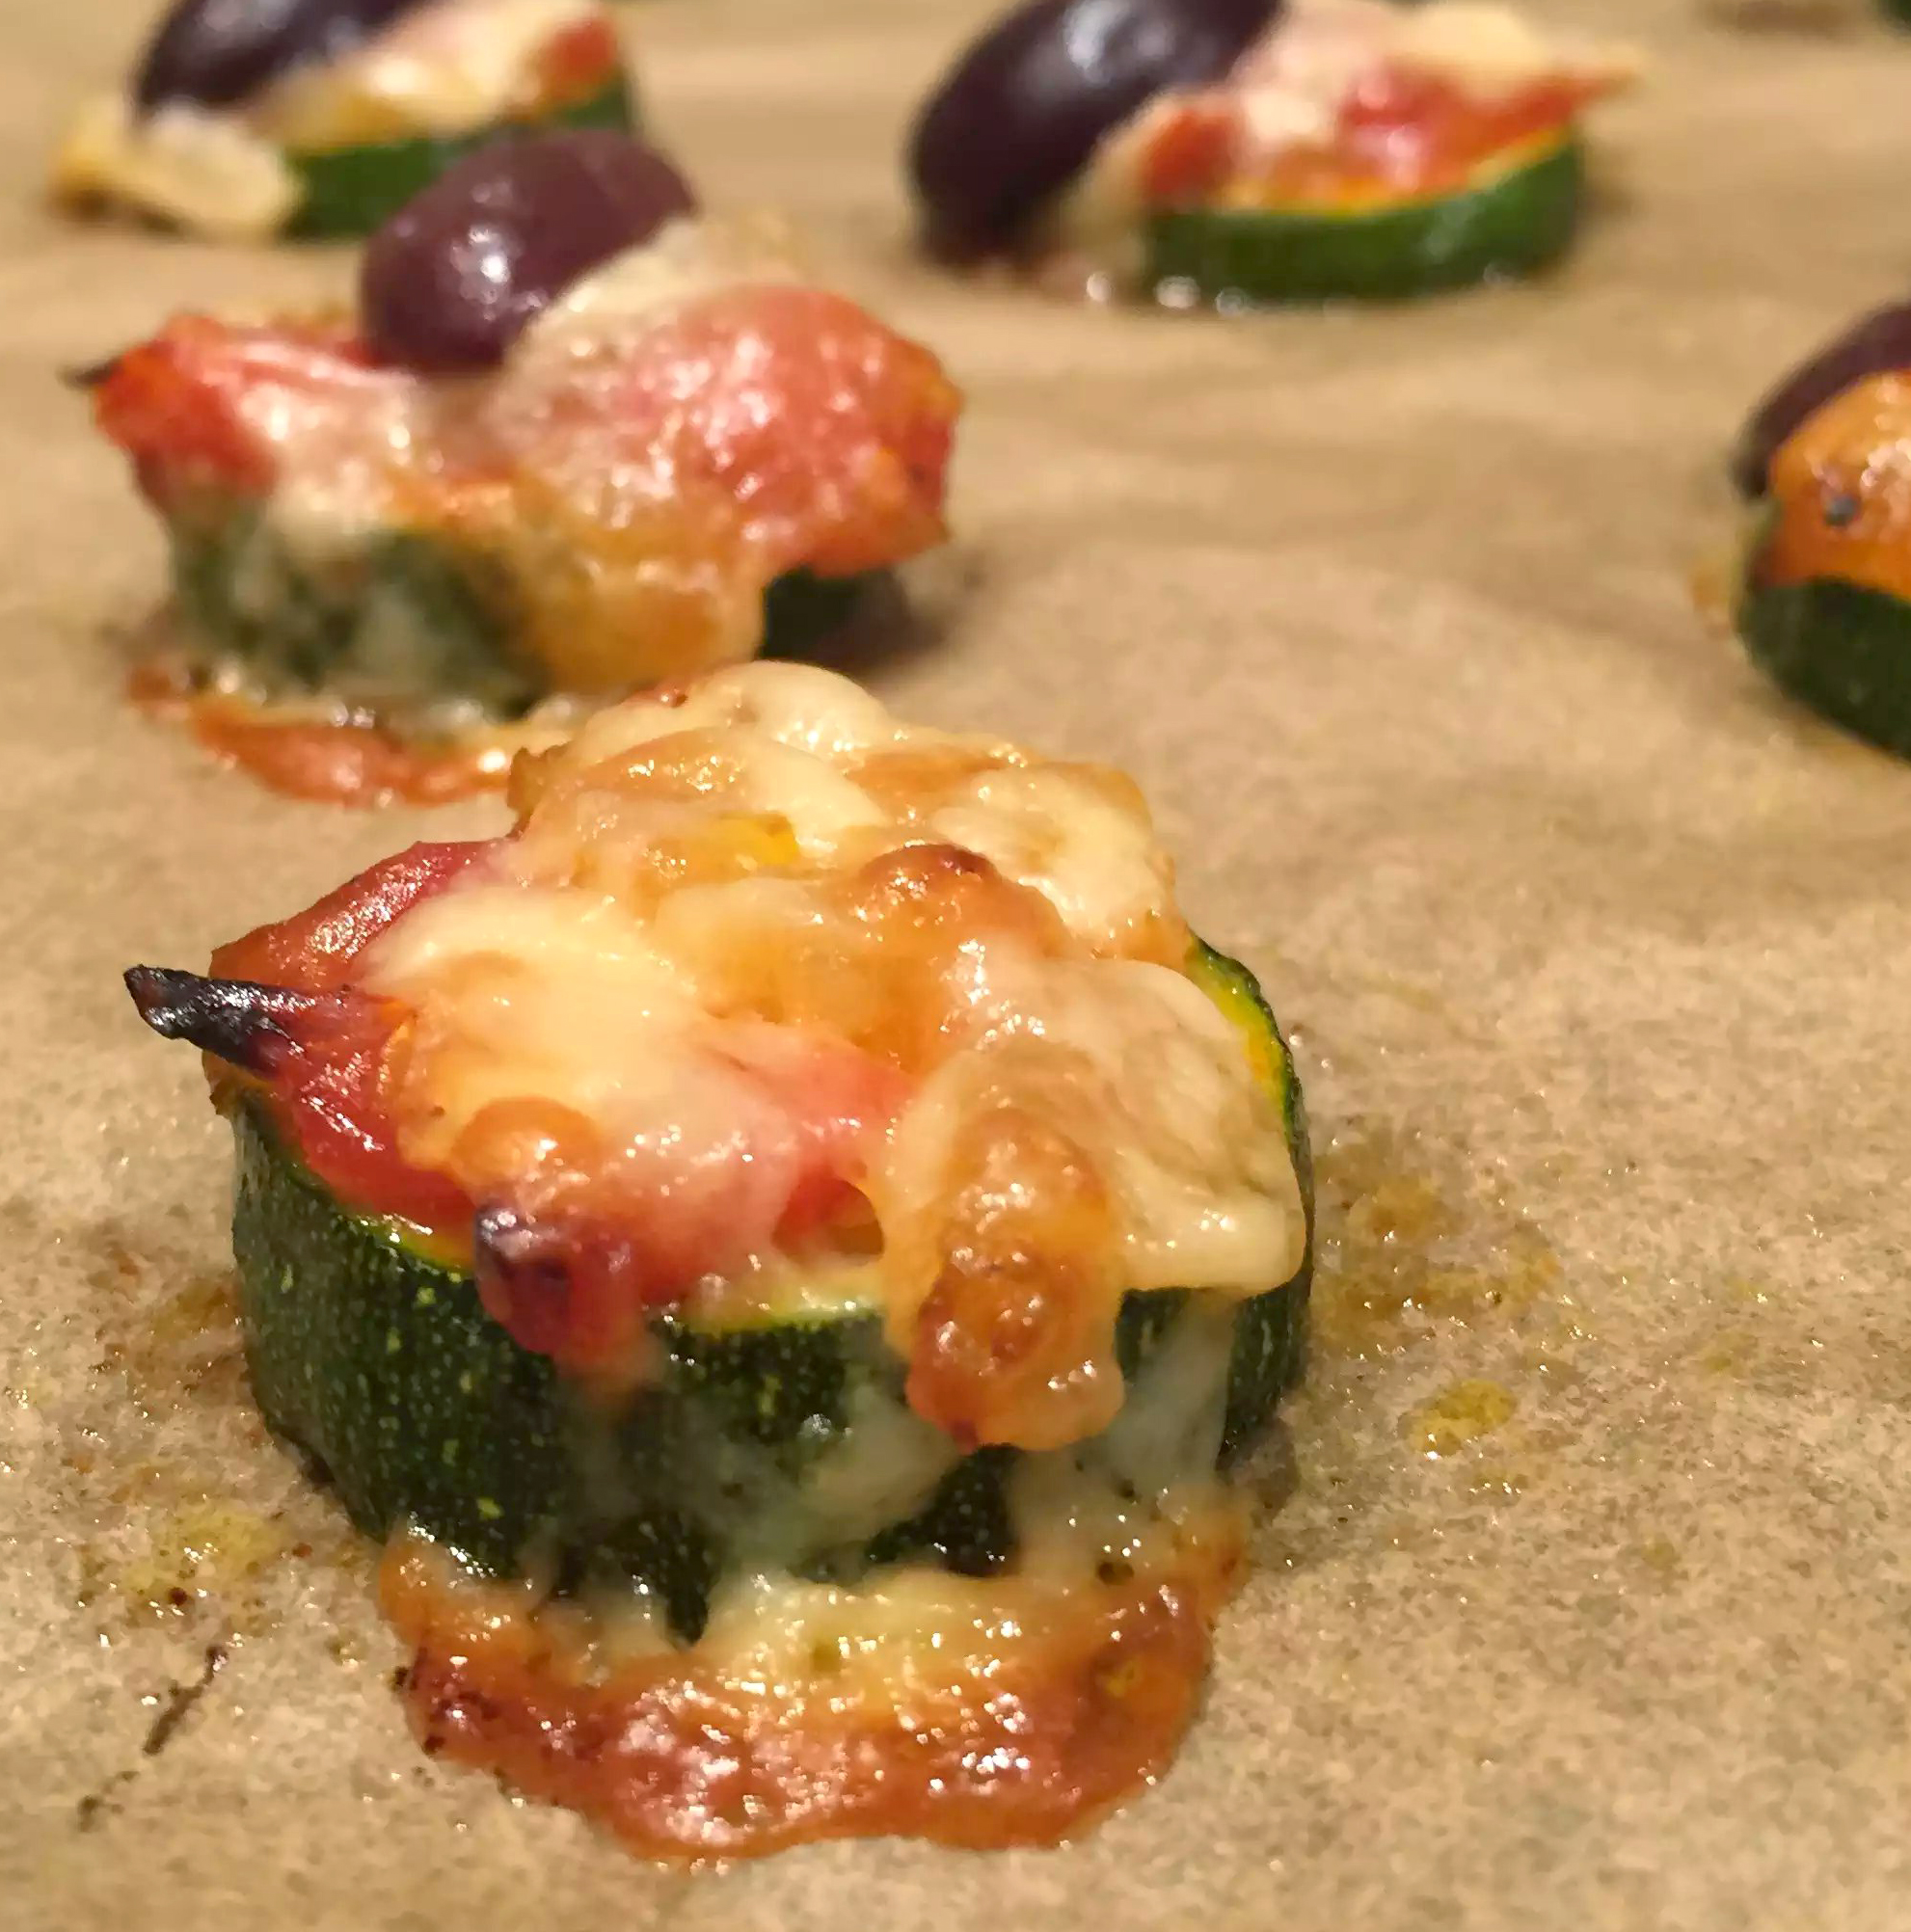 Courgette Pizza Bites Cheese Tomato Olive Appetiser - SCD Paleo Clean Eating, Grain-Free Gluten-Free